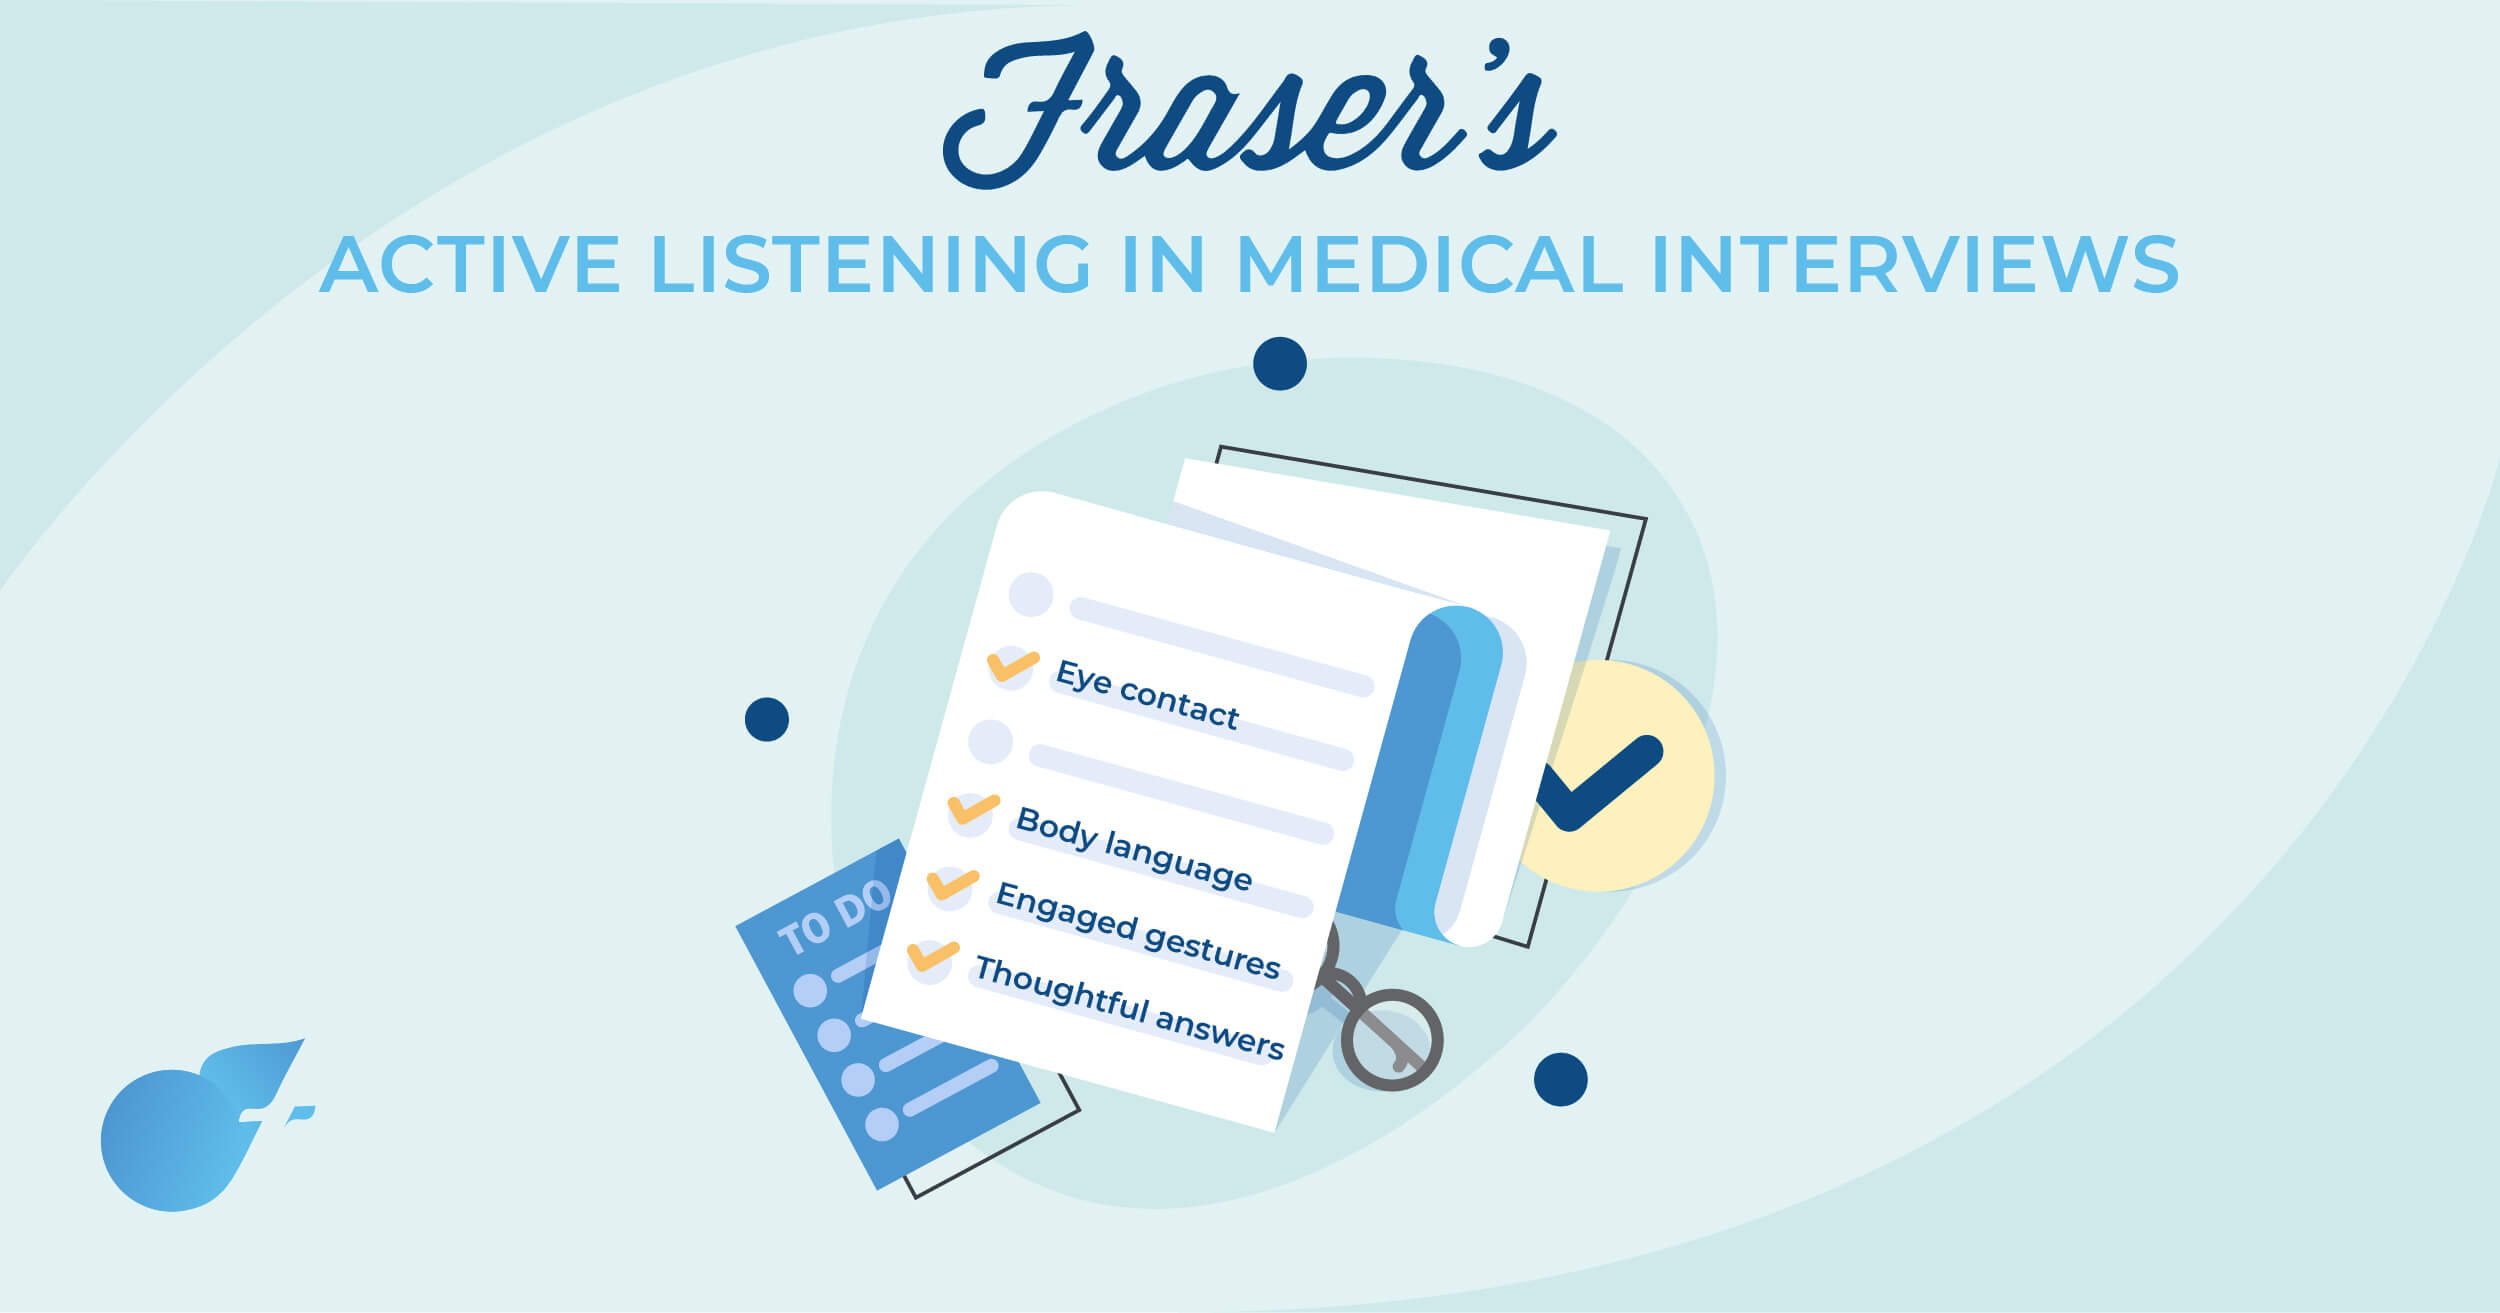 Active listening skills in medical interviews (Interview tips)